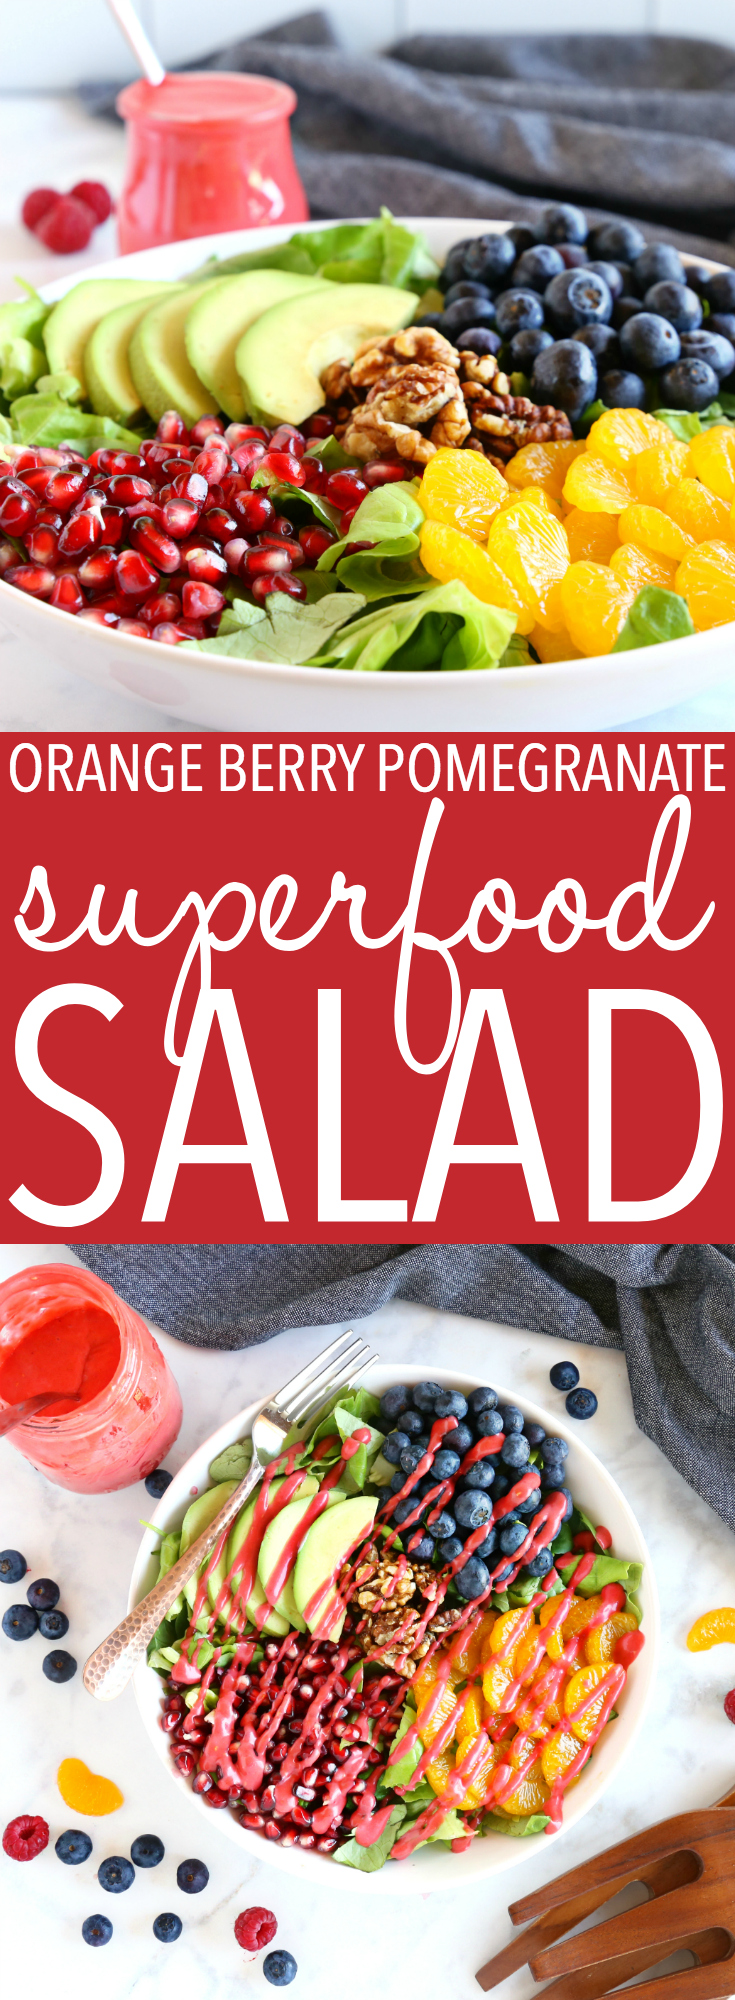 This Orange Berry Pomegranate Superfood Salad is the perfect healthy summer salad made with fresh ingredients and an easy homemade raspberry vinaigrette dressing! #superfood #superfoodsalad #fruitsalad #healthysalad #healthysummersalad #fruitsalad #cleaneating #eatclean #health #healthyrecipe via @busybakerblog